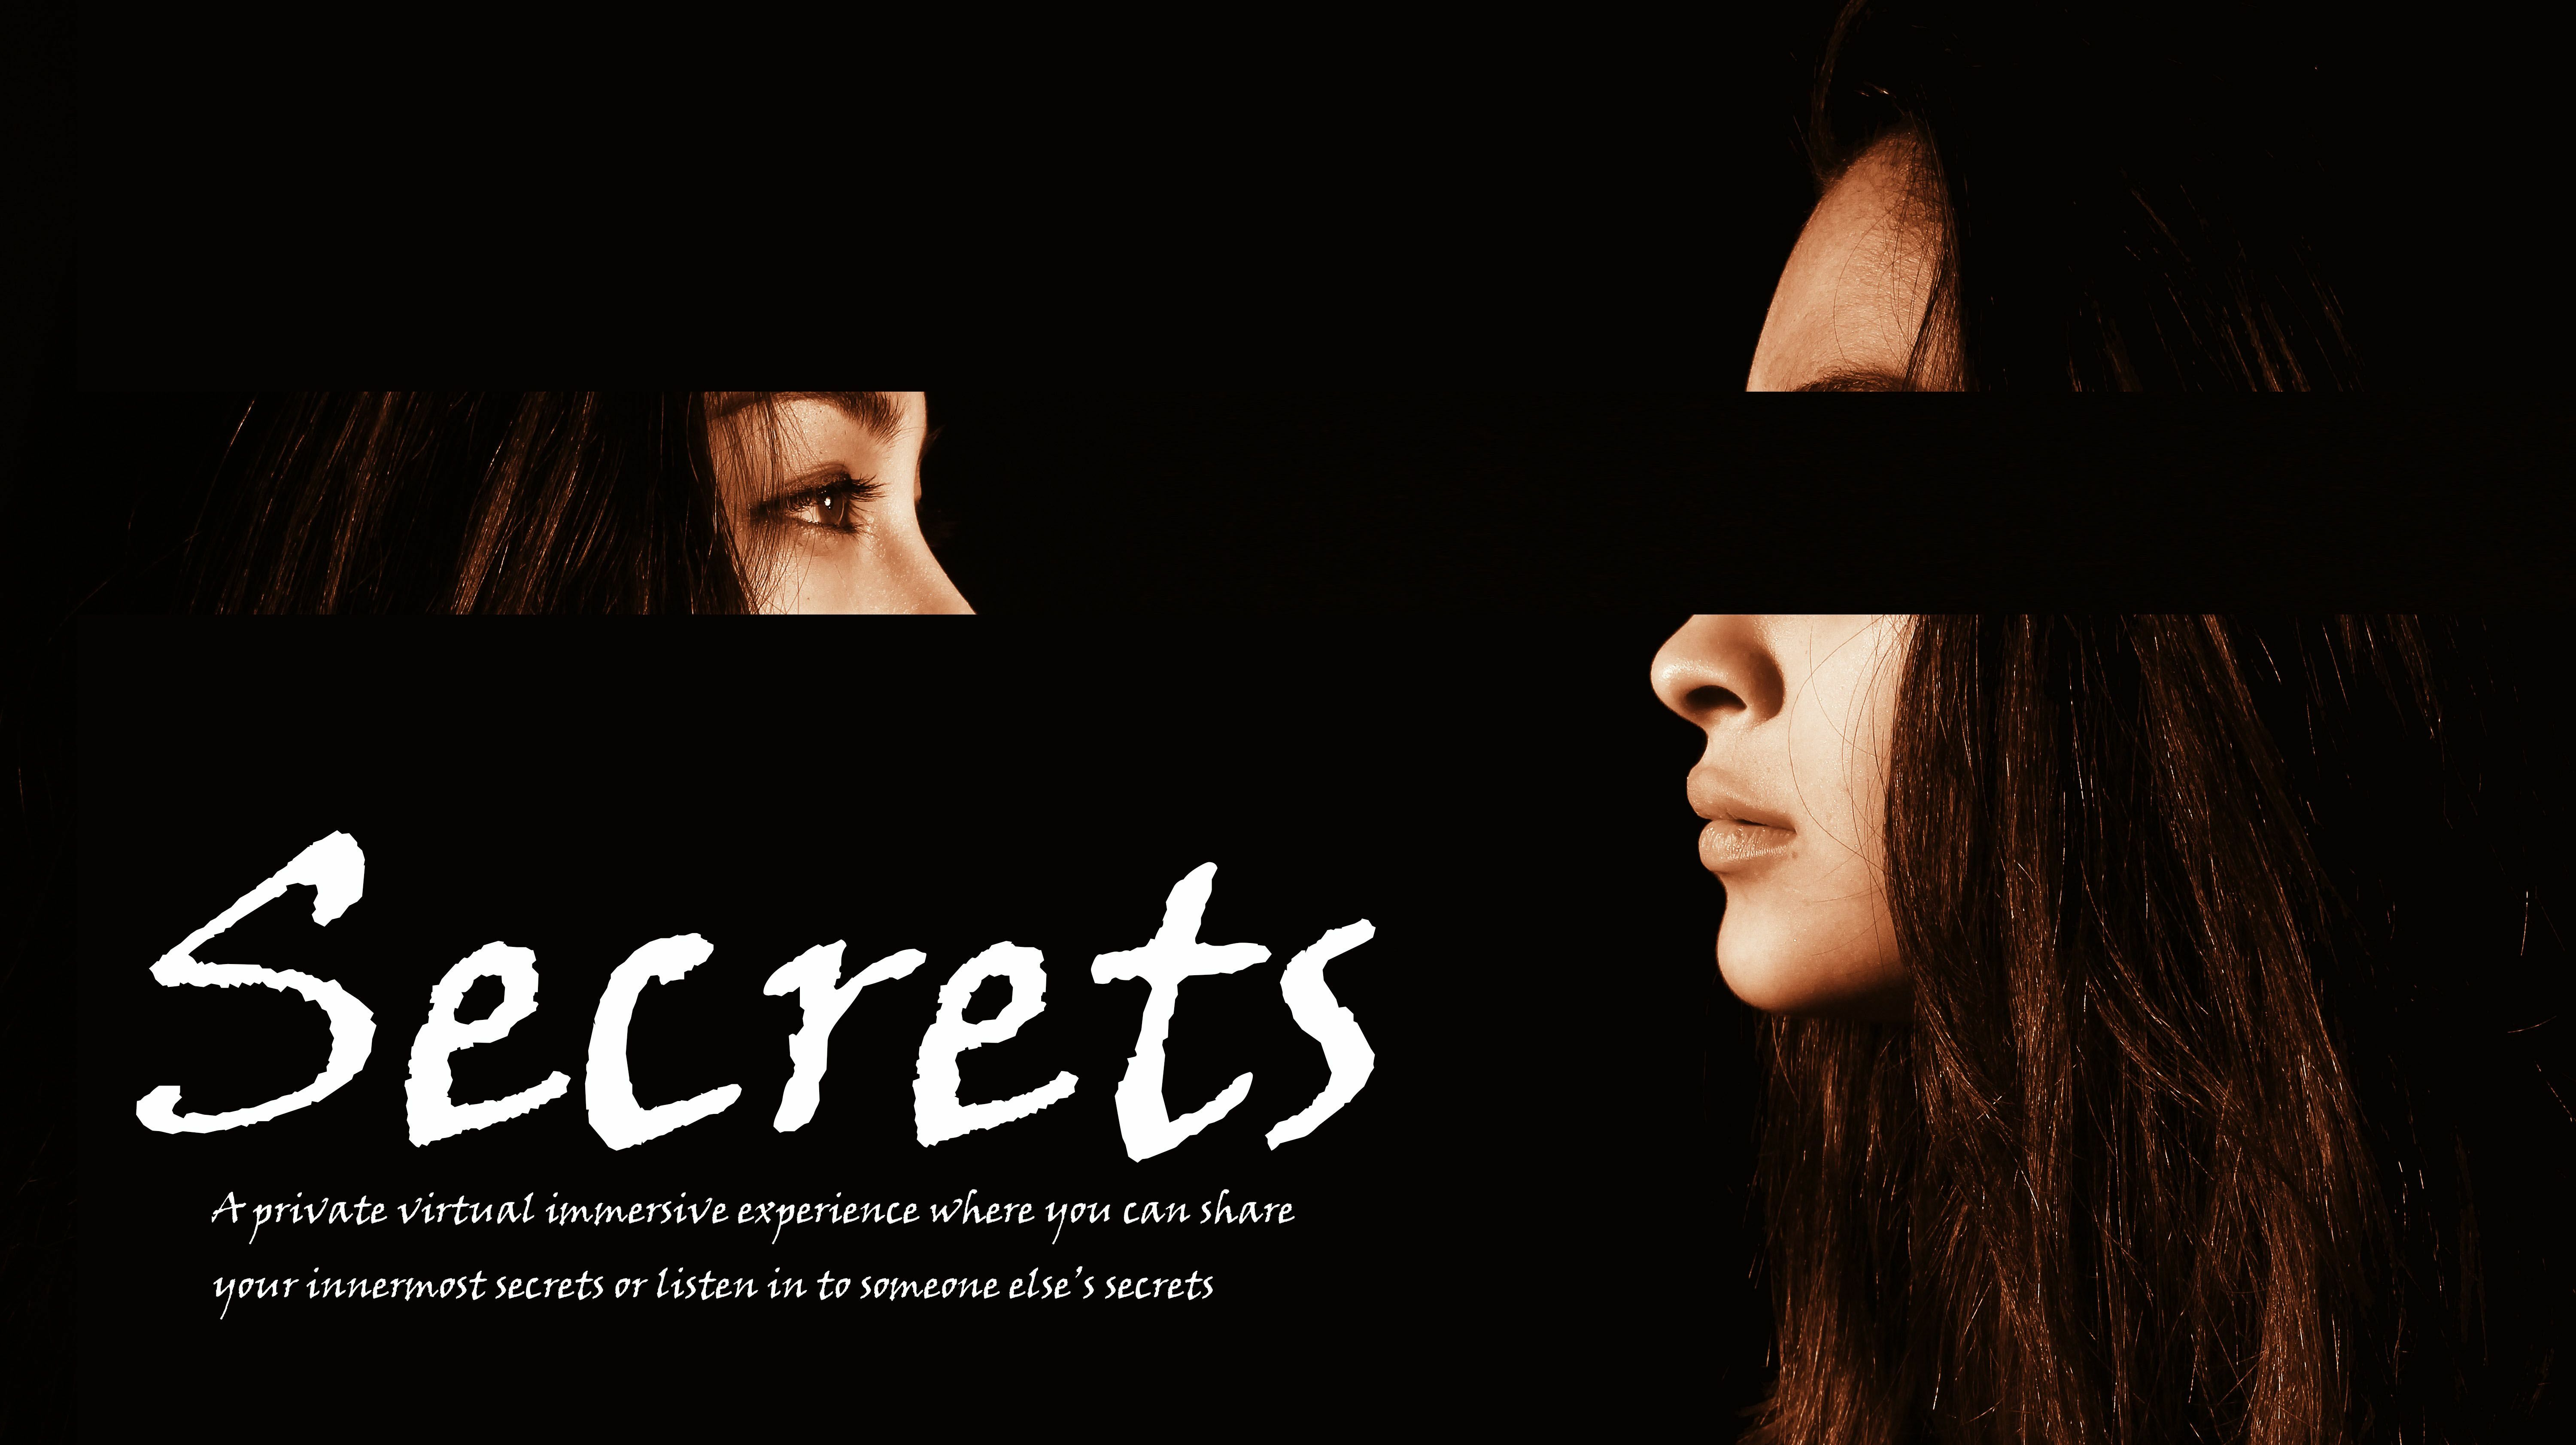 Secrets: A 1 on 1 Virtual Immersive Experience